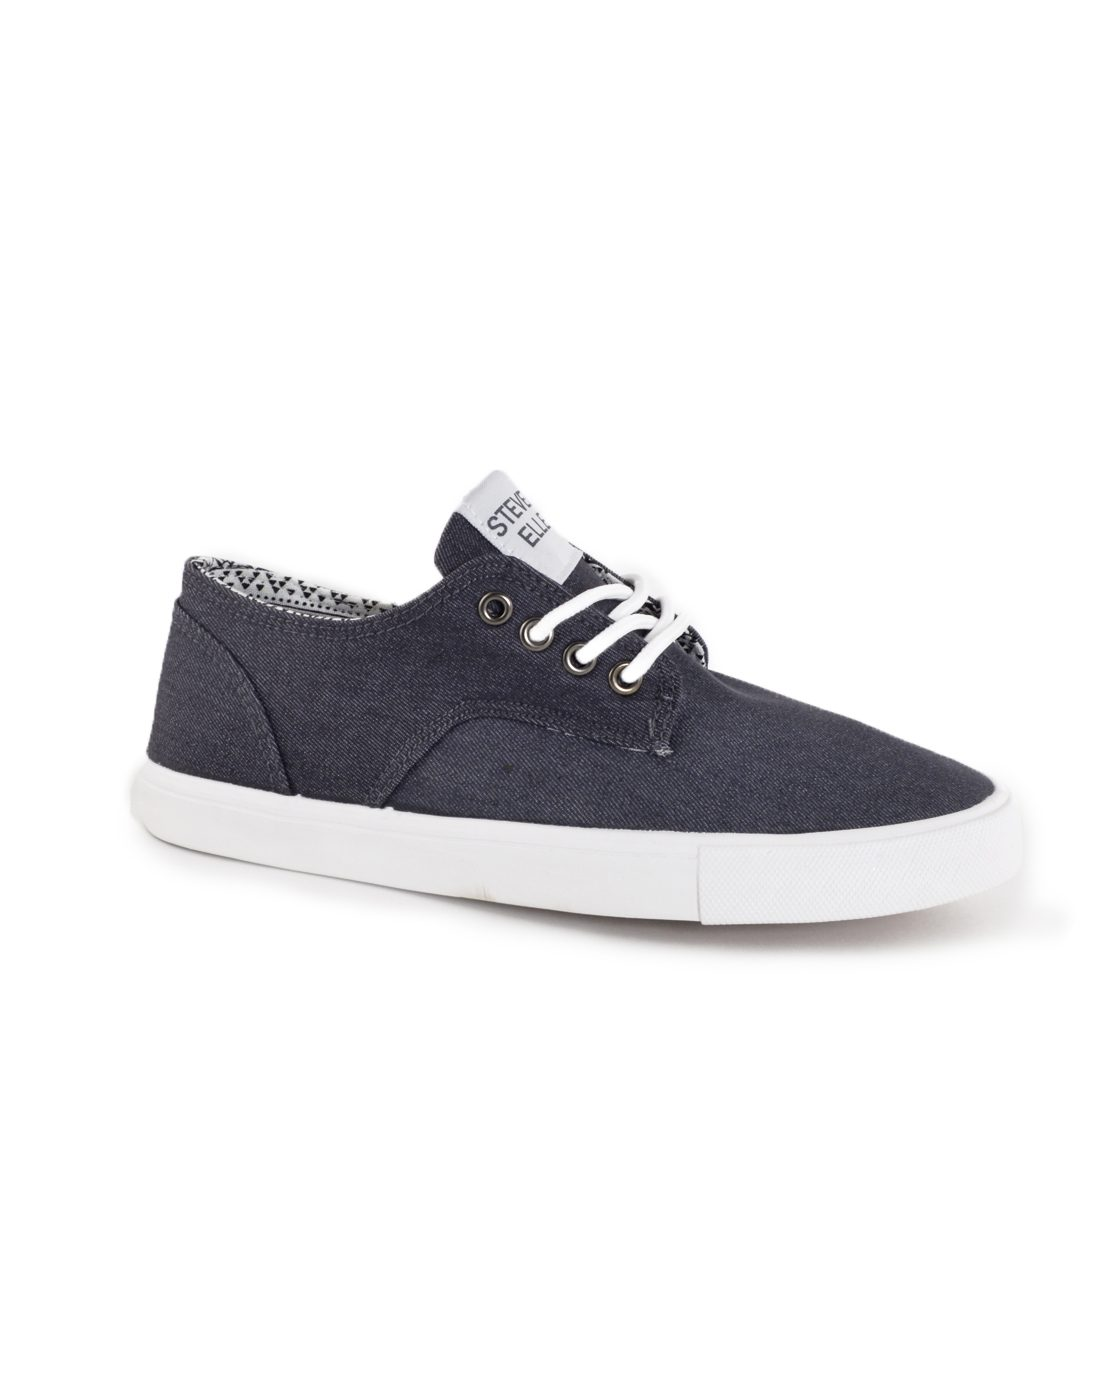 Canvas lace-up athletic shoes-11-MY UPSCALE STORE